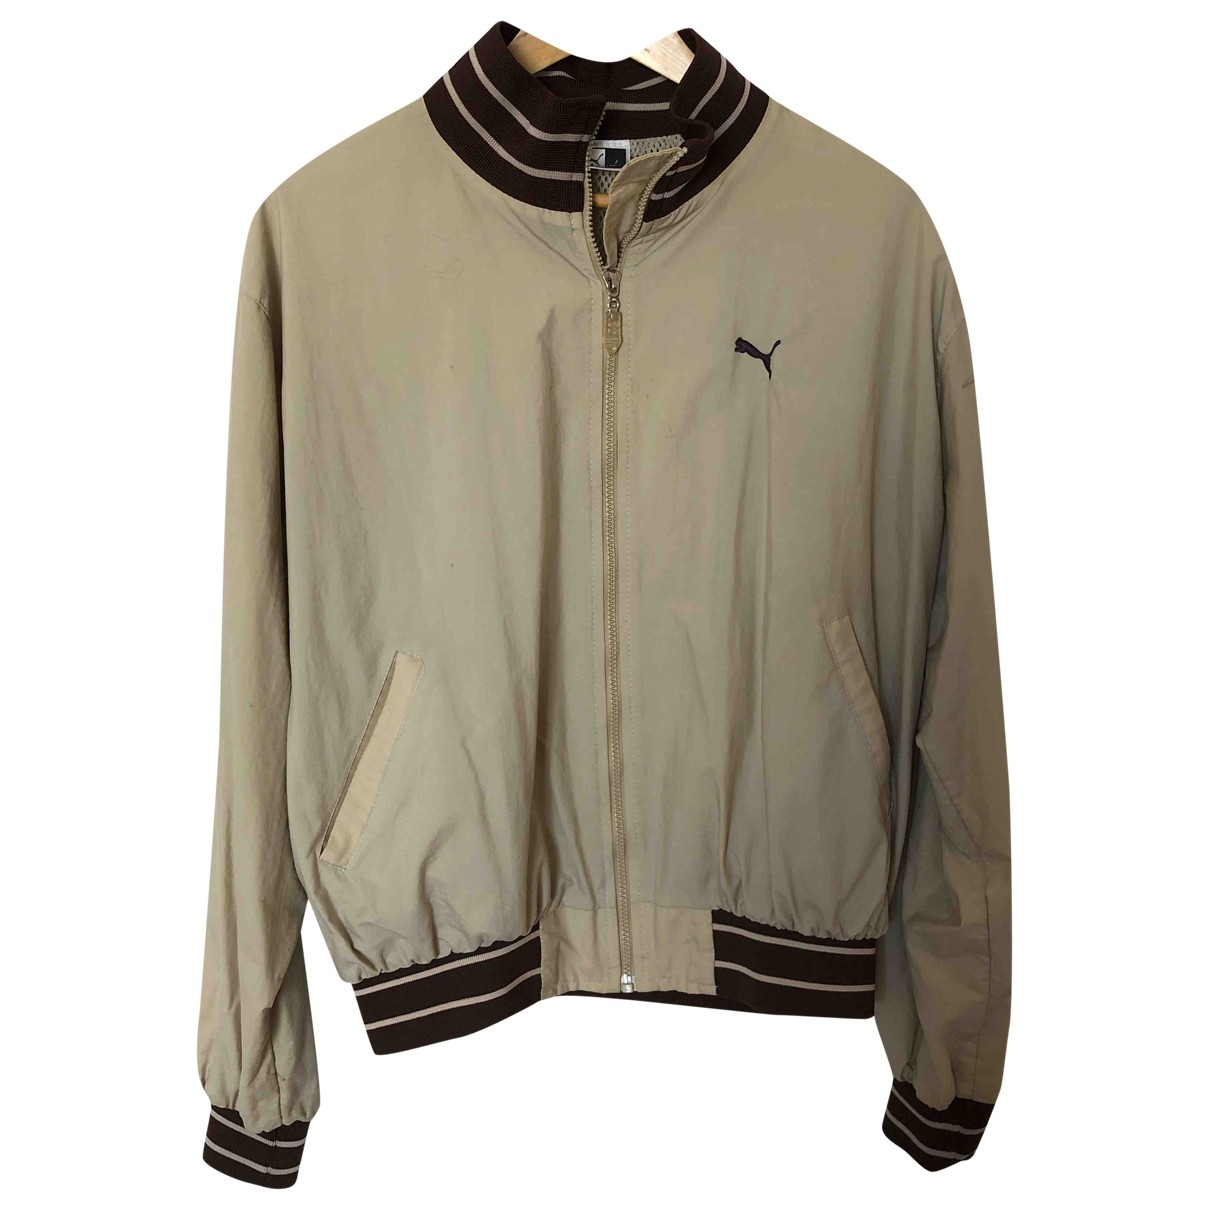 Puma \N Beige jacket  for Men L International